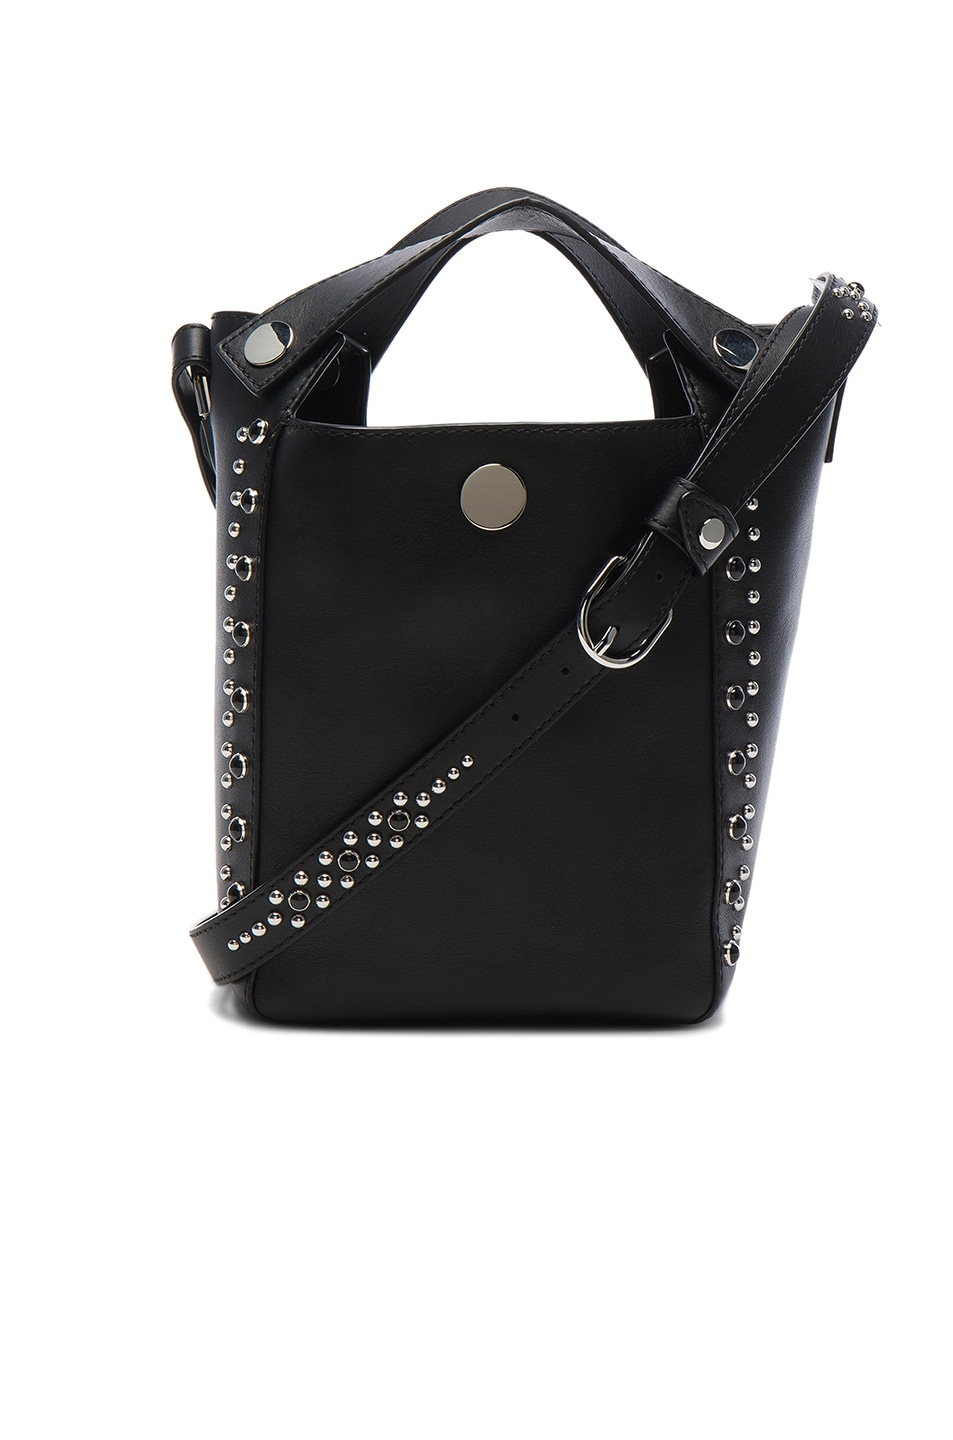 Image 1 of 3.1 phillip lim Dolly Small Tote in Black